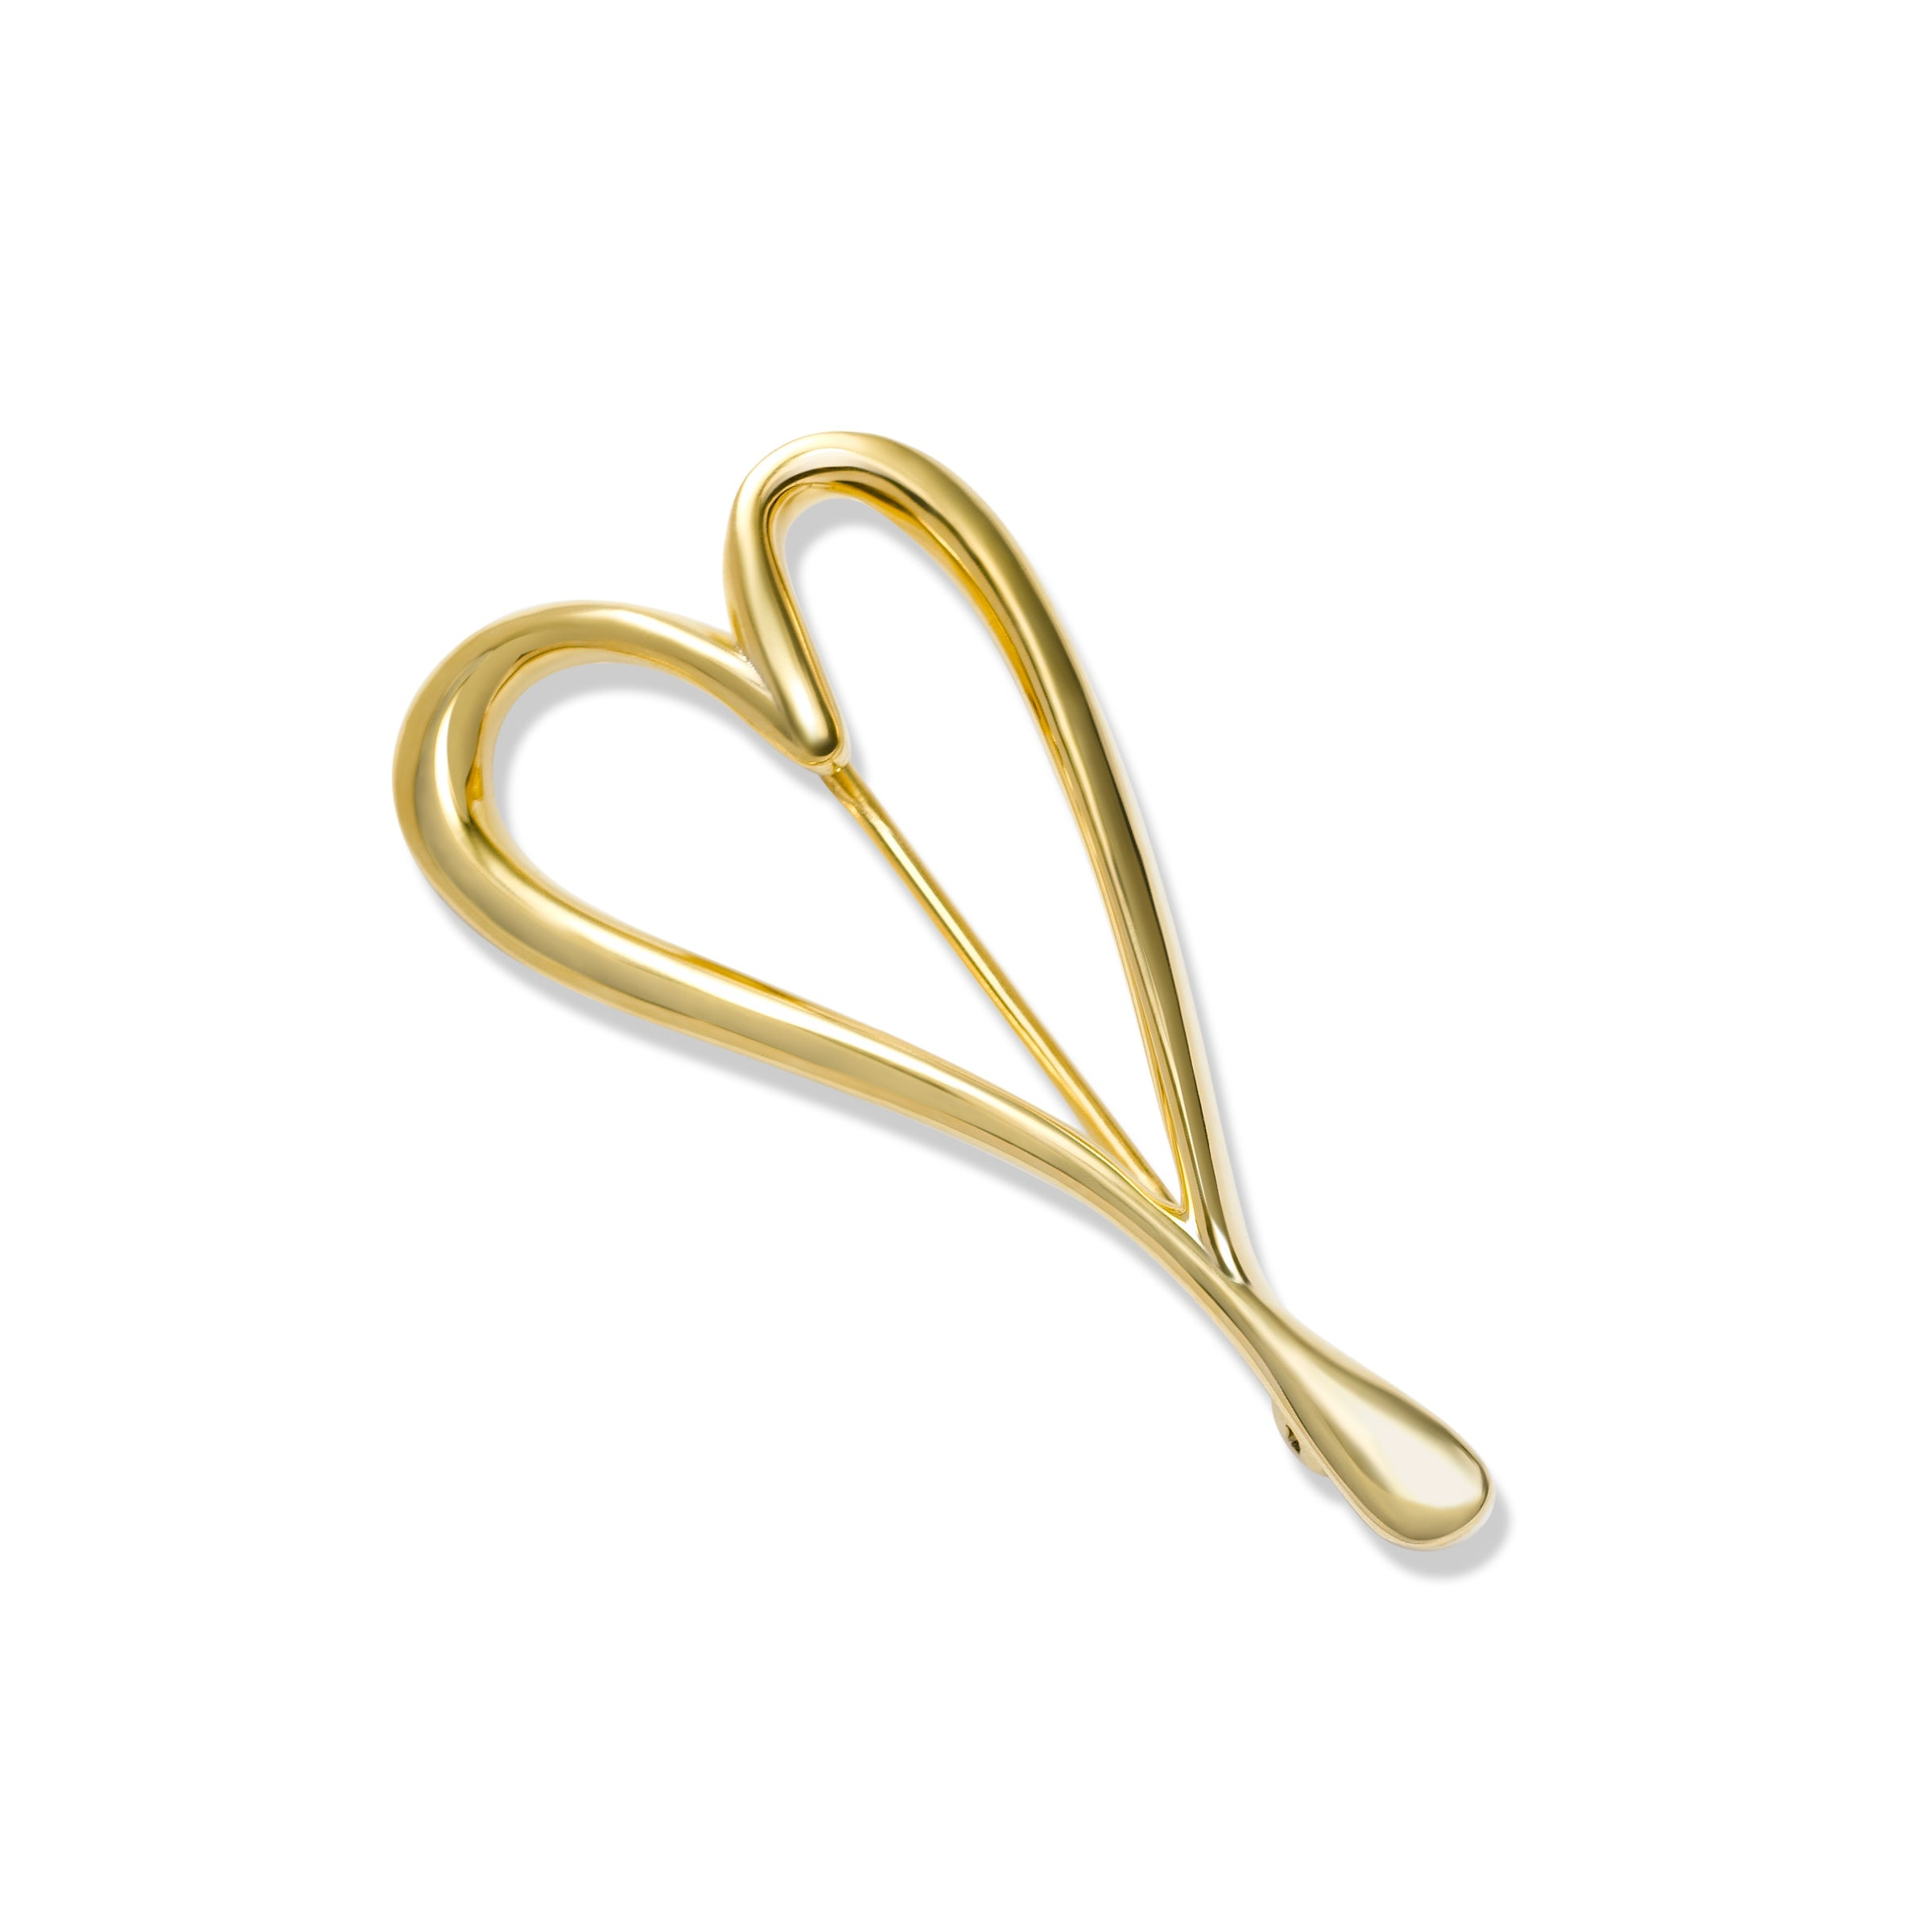 Modern Design Heart Pin, Sterling Silver with Yellow Gold Plating